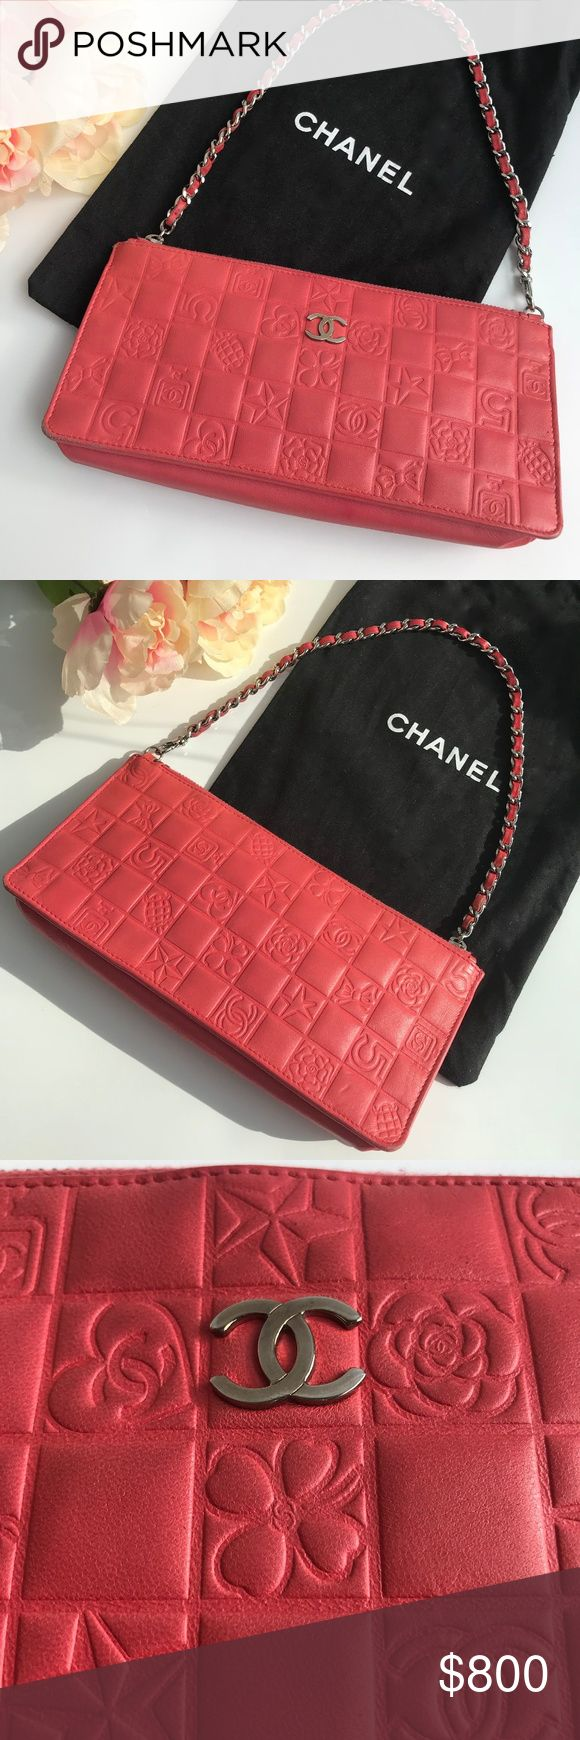 Chanel wallet on chain pink pocketbook purse Bubble gum pink Authentic Chanel pocketbook / wallet on chain. Has some minor wear and tear around the outside edges (pictured) but otherwise in great condition. Measurements: 8.75 inches x 4 inches x 1 inch thick at the base of the purse. CHANEL Bags Mini Bags